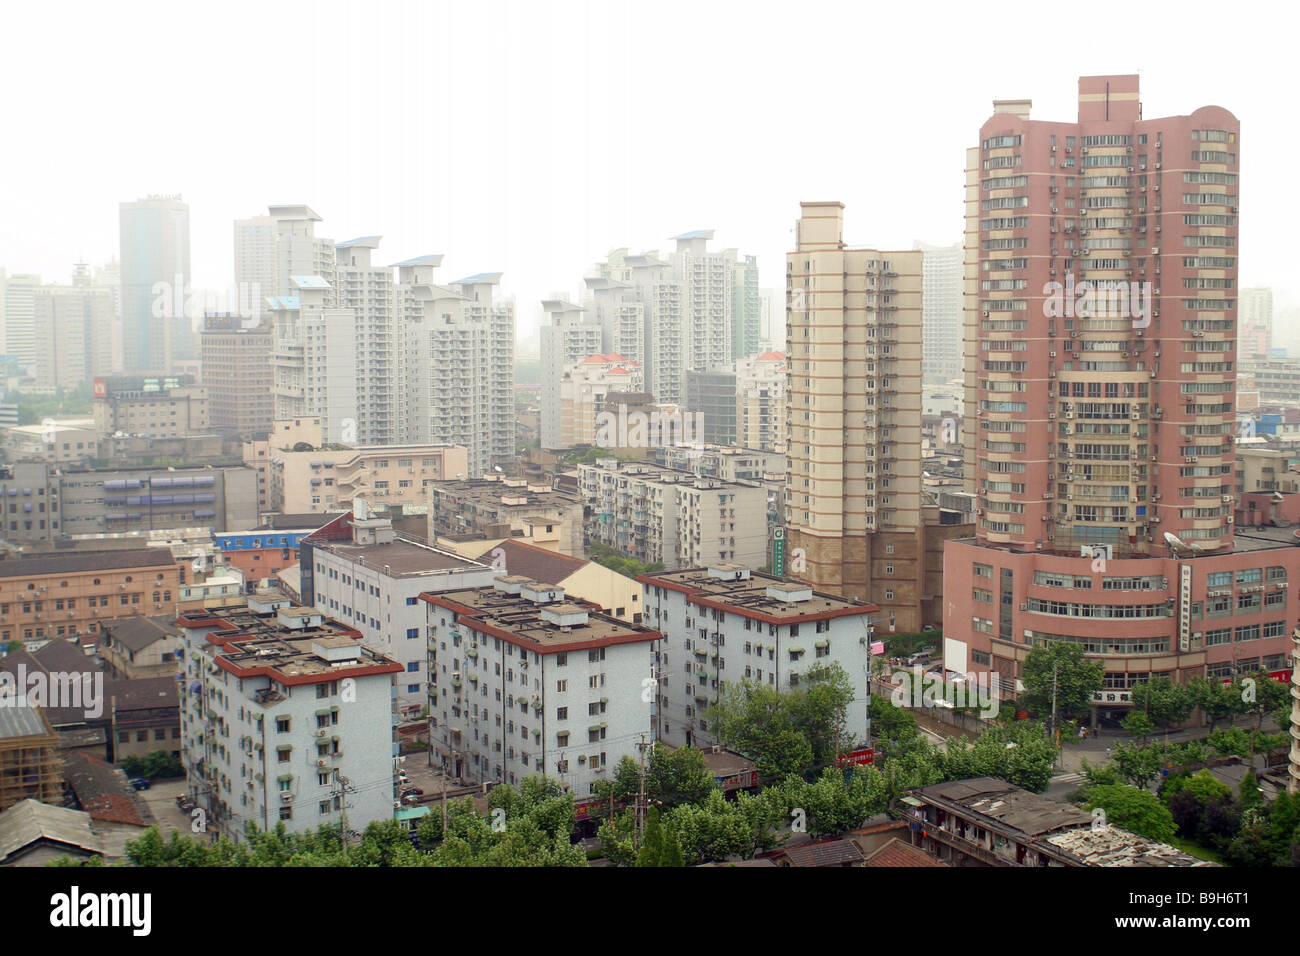 Shanghai: the population. The number and density of population in Shanghai